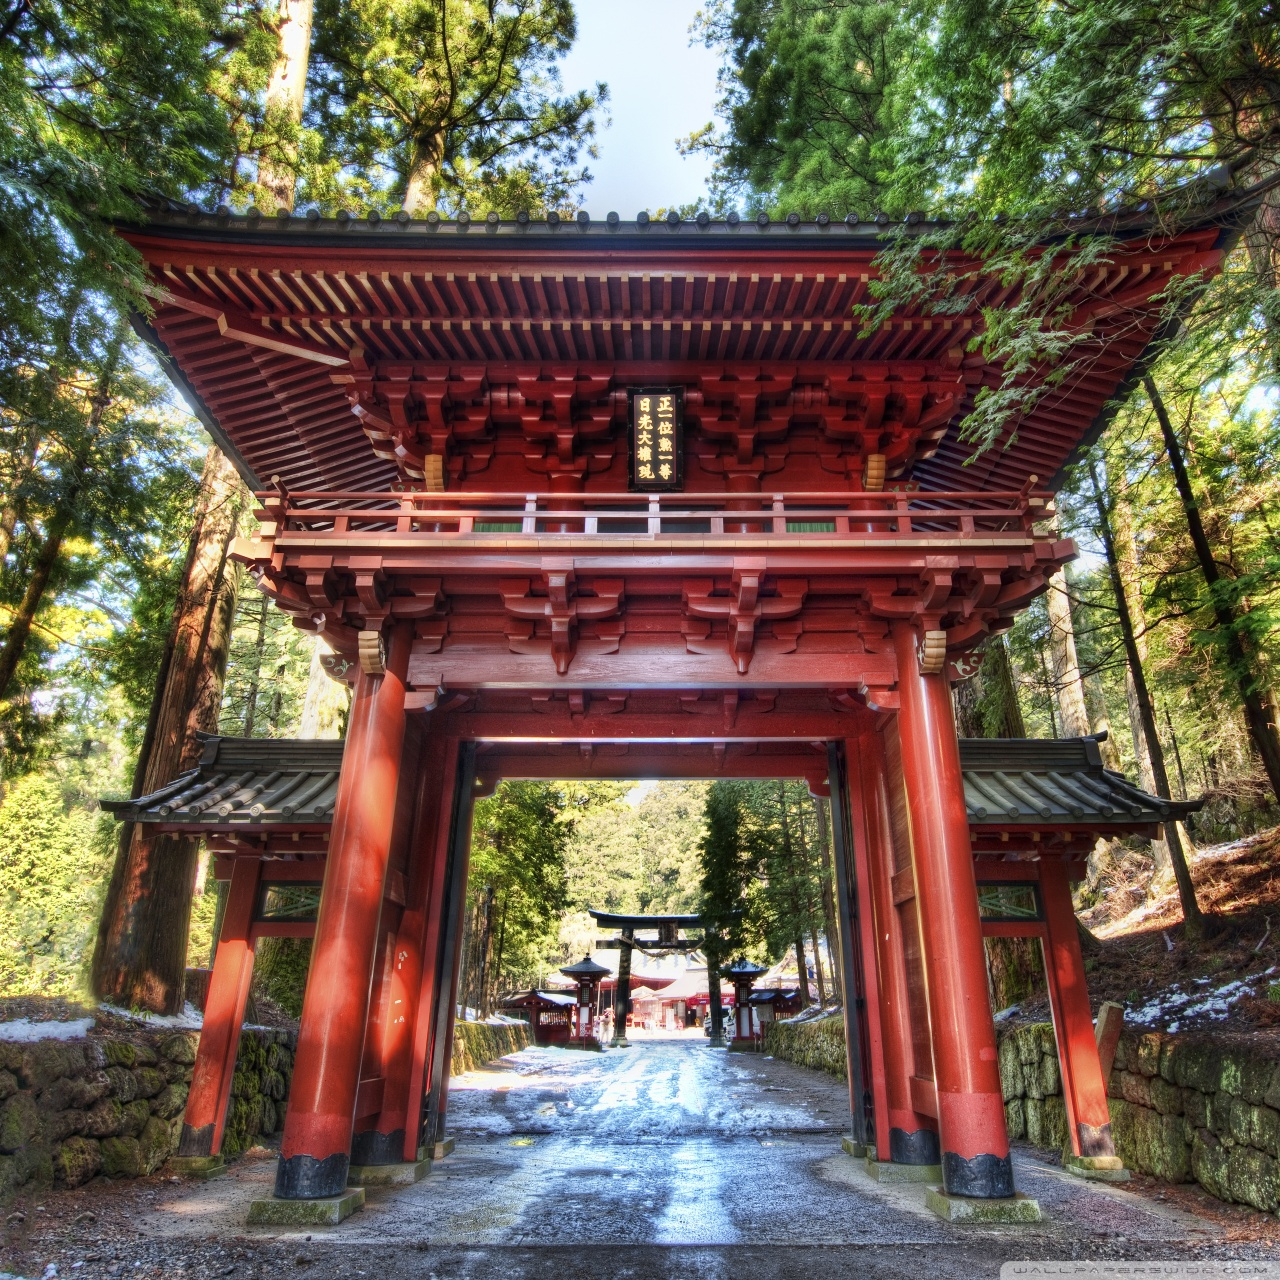 Temple Gate In Japan 4k Hd Desktop Wallpaper For 4k Ultra Hd Tv